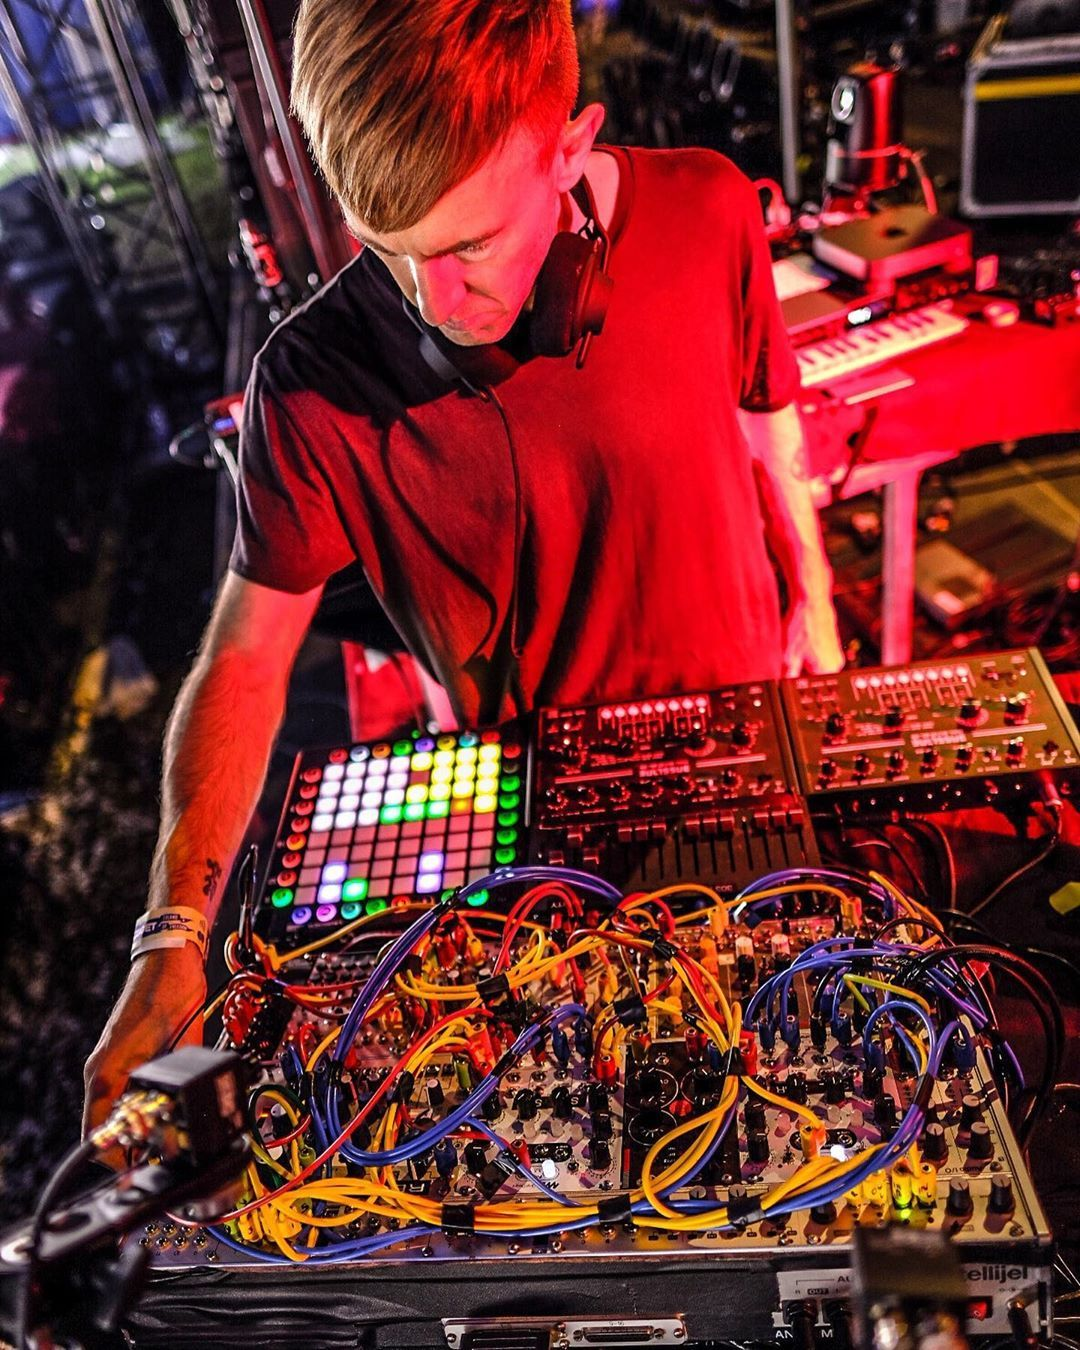 Richie Hawtin On Instagram Analog Digital Hybrid Computerized Modular Battleship Ready For Tonight Szigetofficial Euror Techno Music Techno Battleship